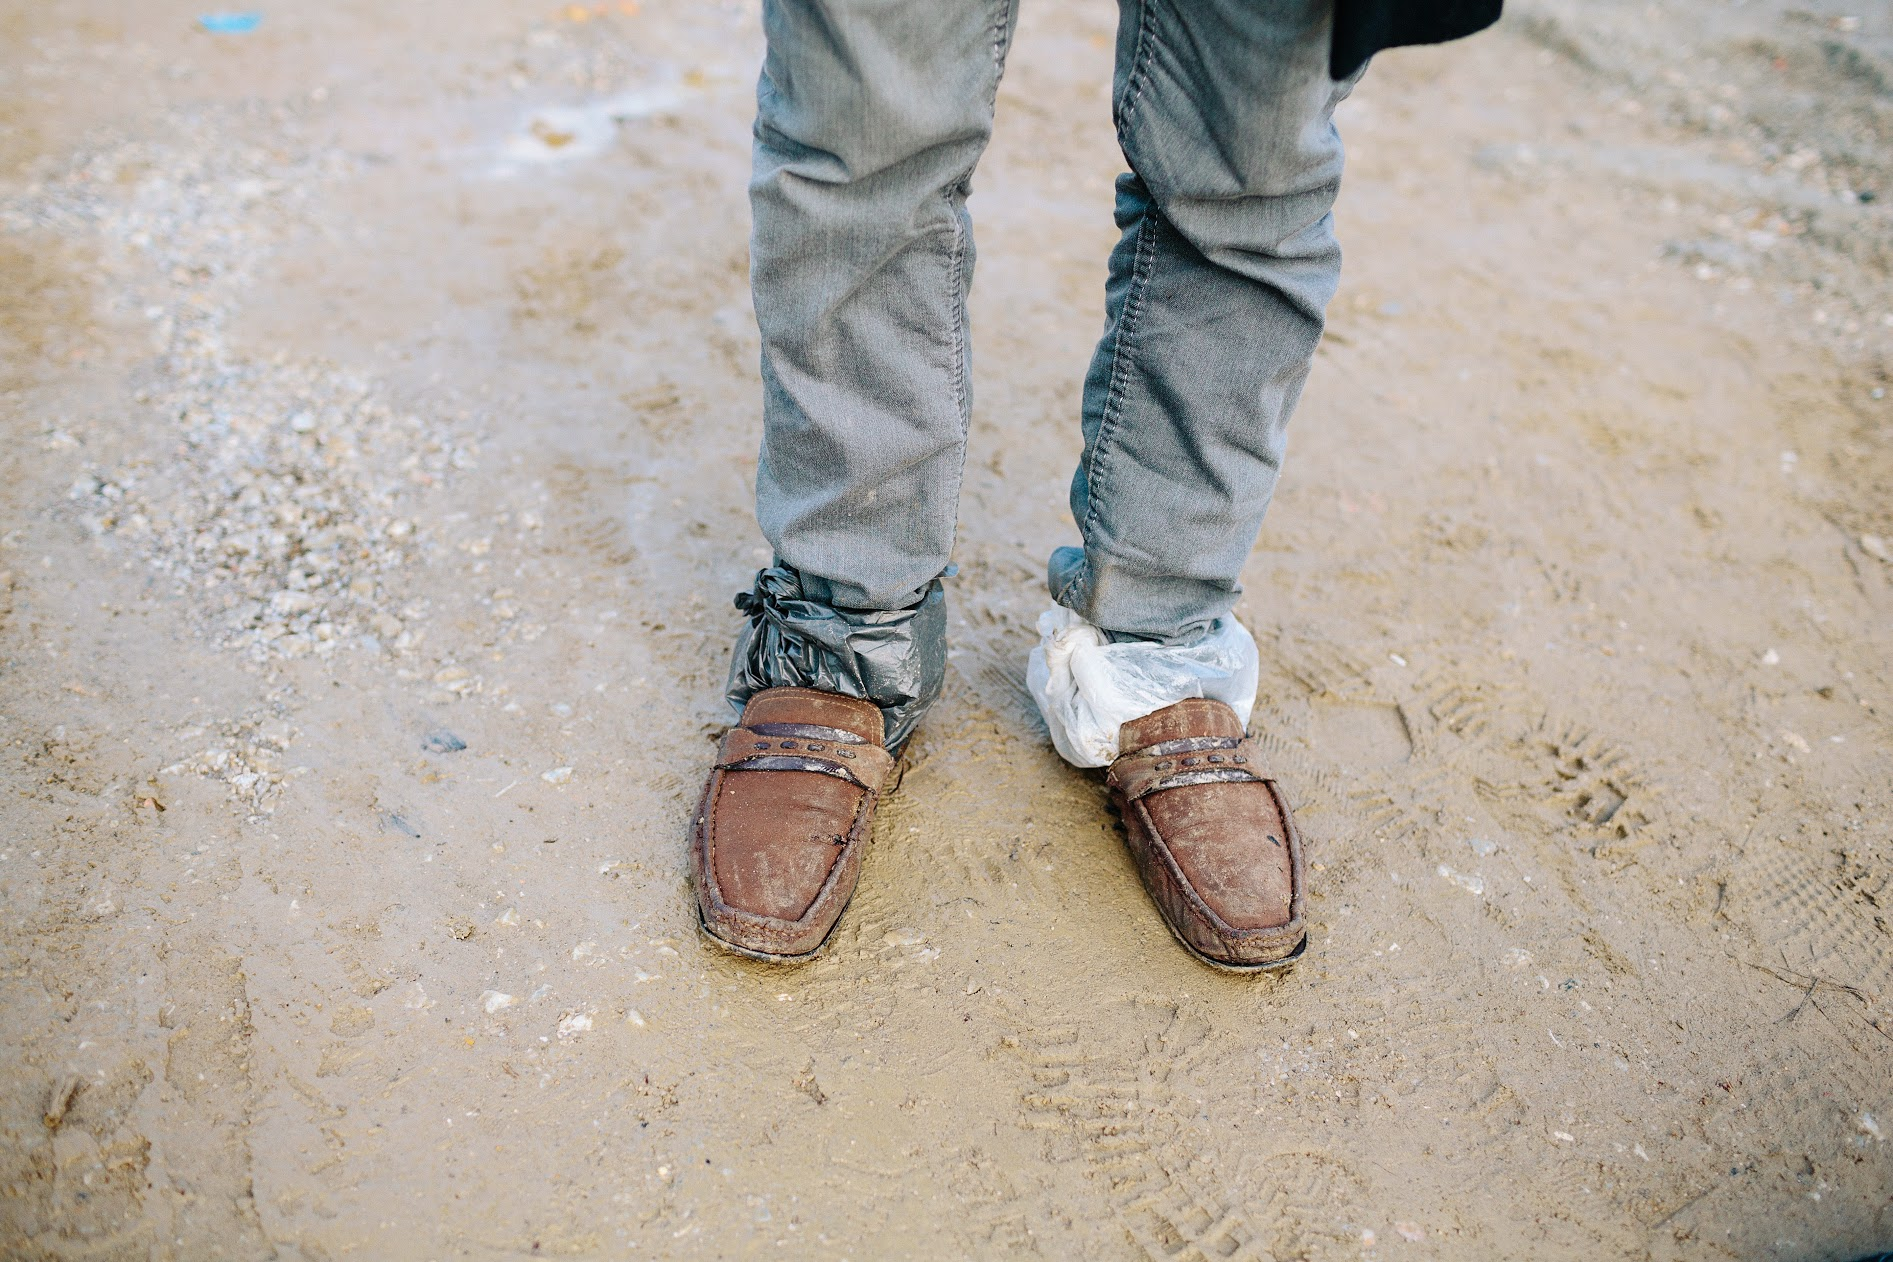 LHI provides emergency aid  which are rarely donated, such as men's socks and underwear. Photo by Shannon Ashton